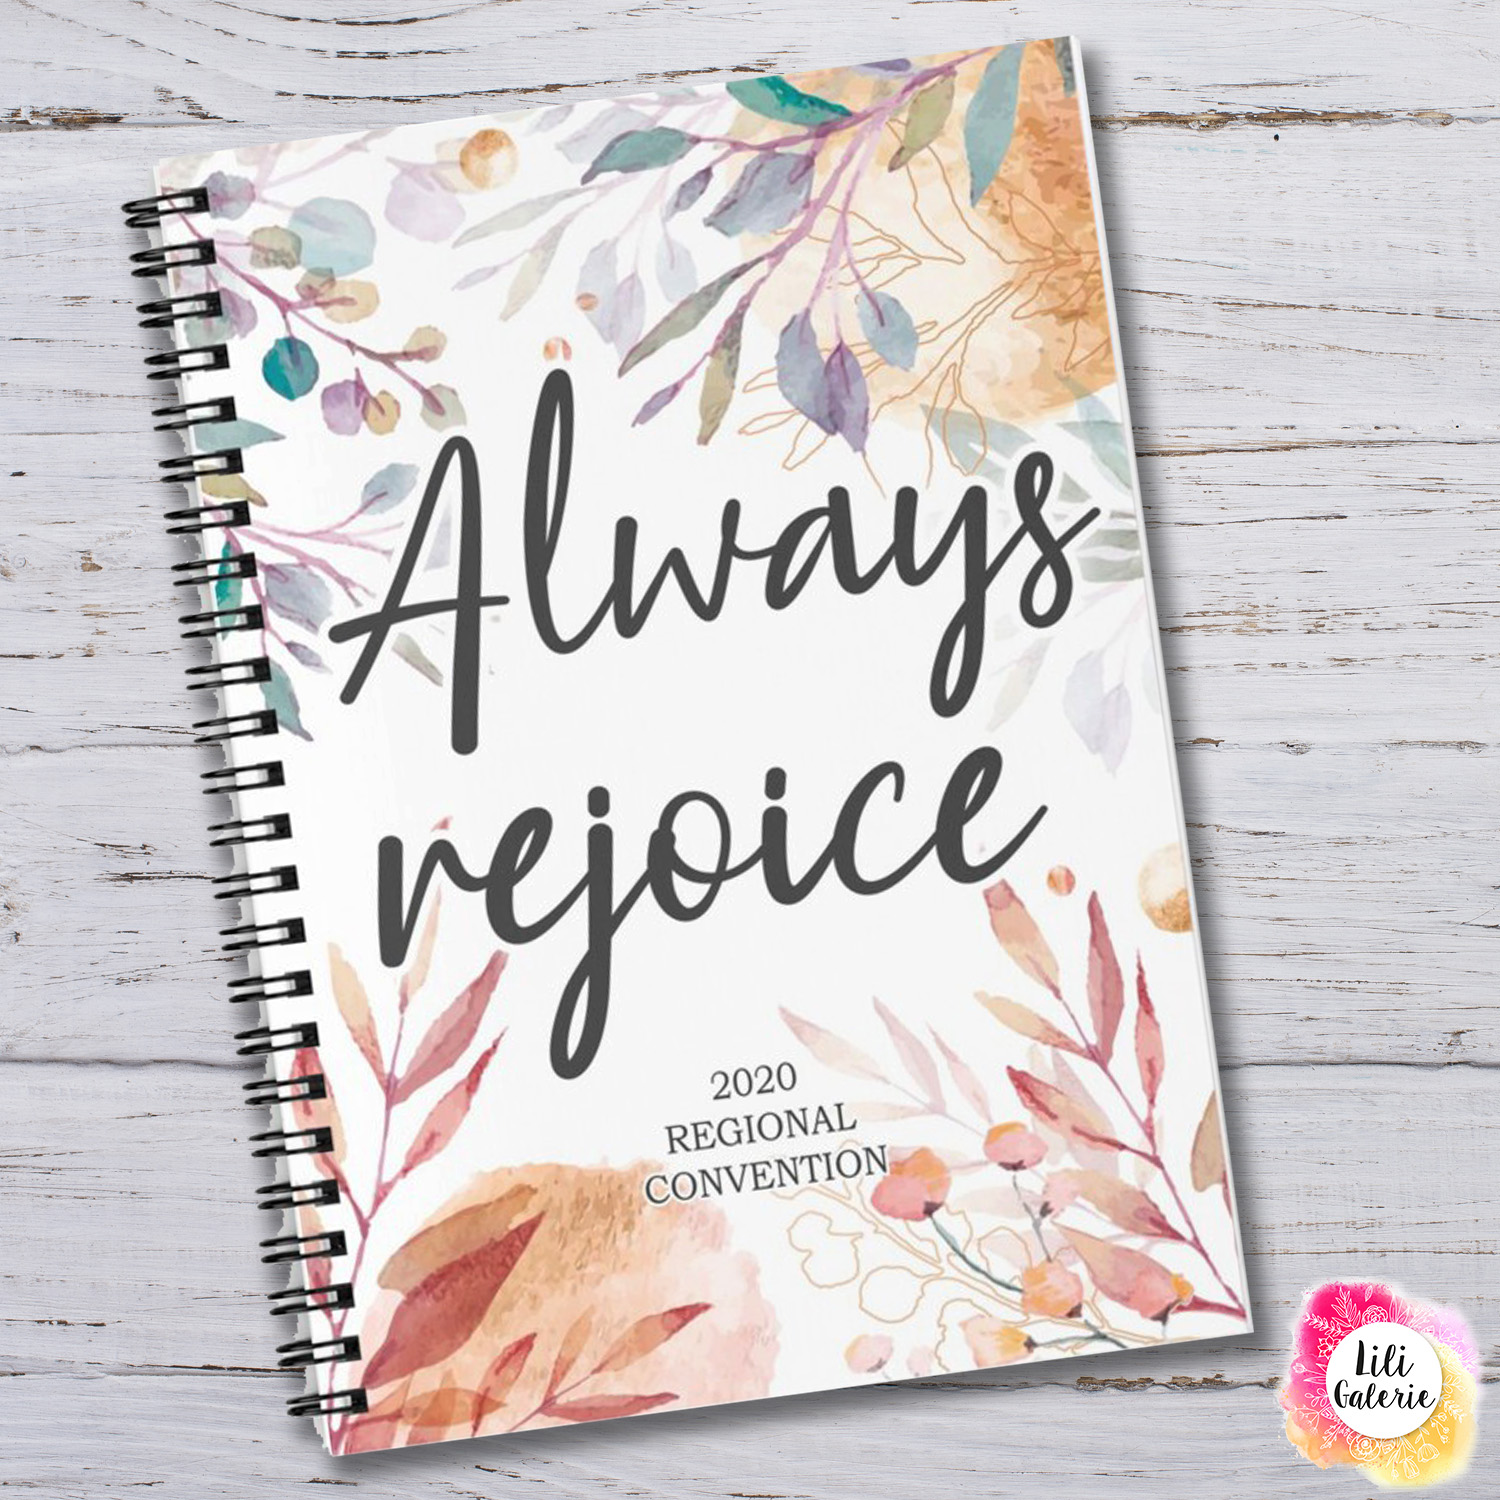 Convention Notebook 2020 - Always rejoice